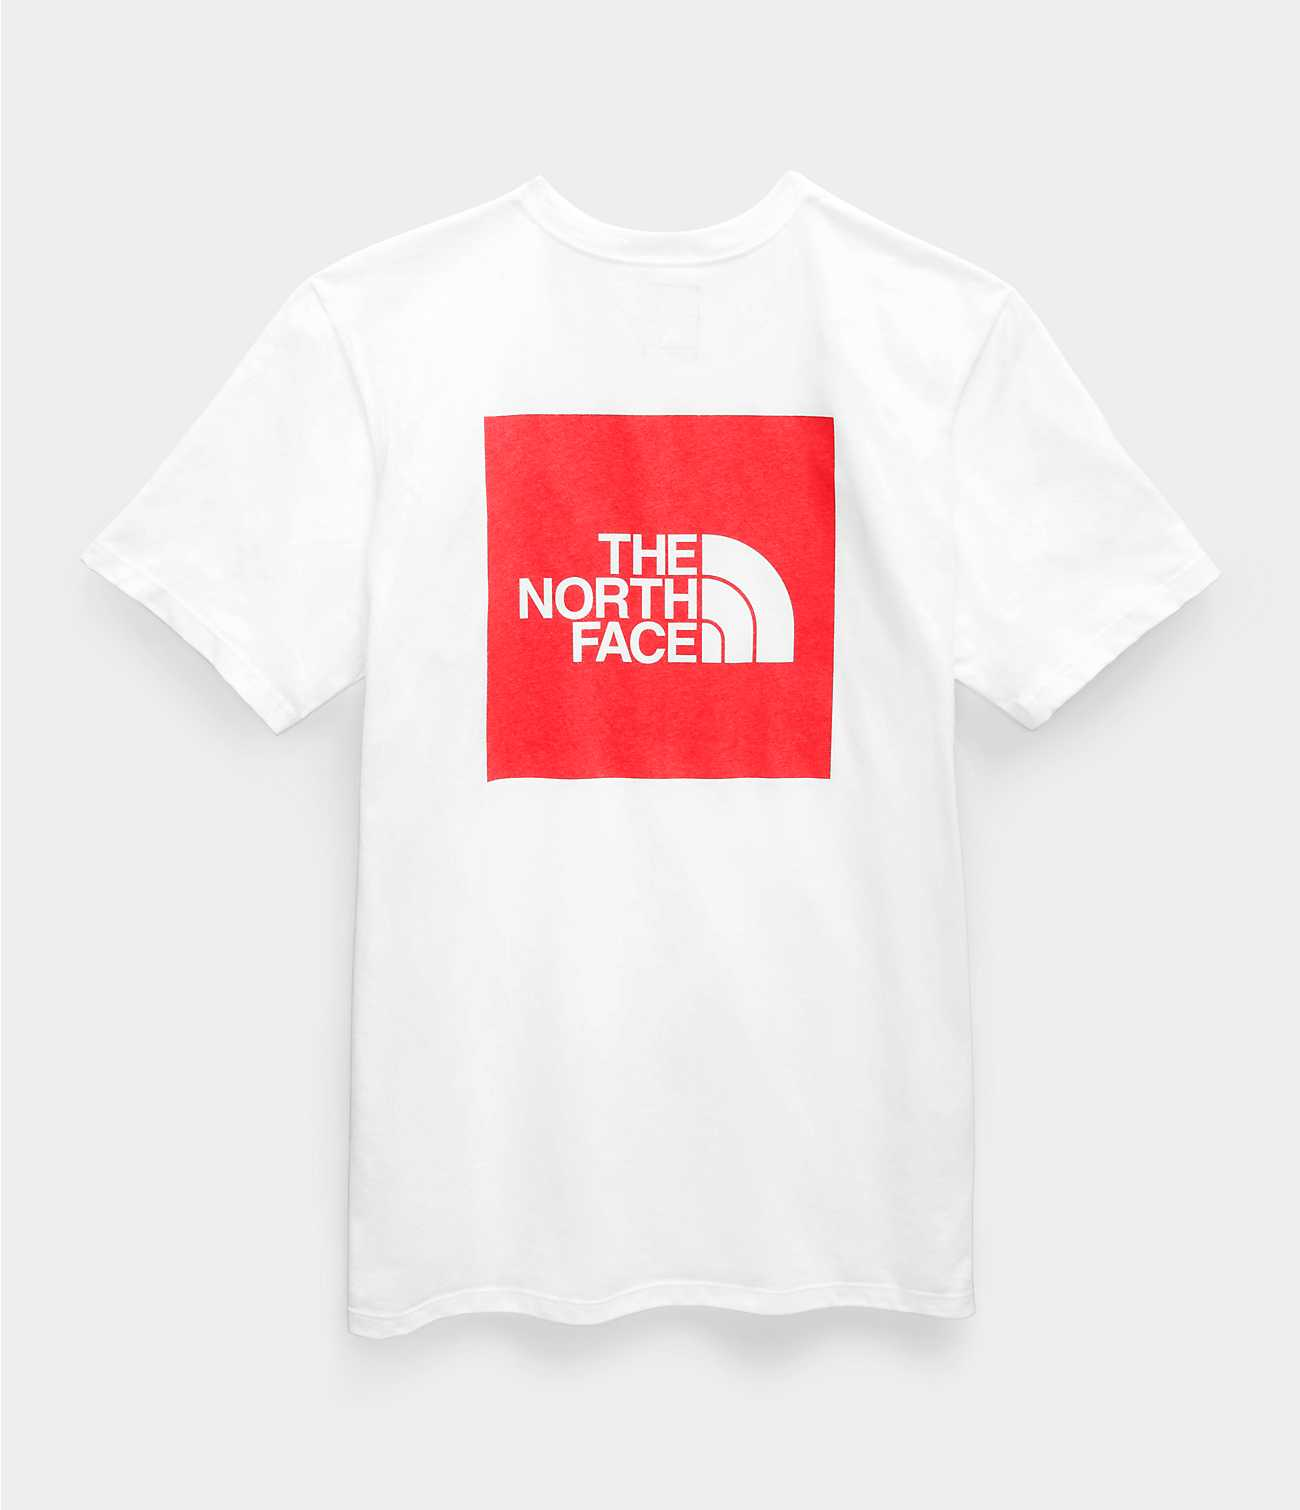 THE NORTH FACE M'S T-SHIRTS SHORT SLEEVE RED BOX TEE